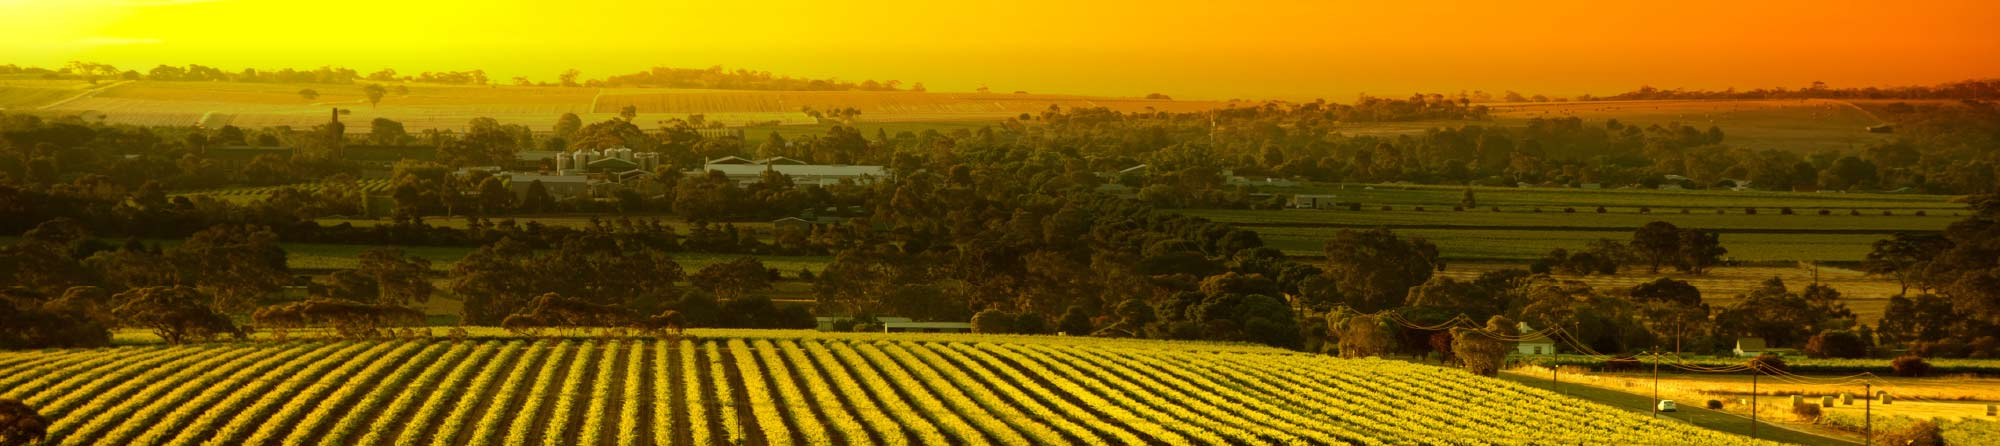 View over a winery in Barossa Valley at sunset